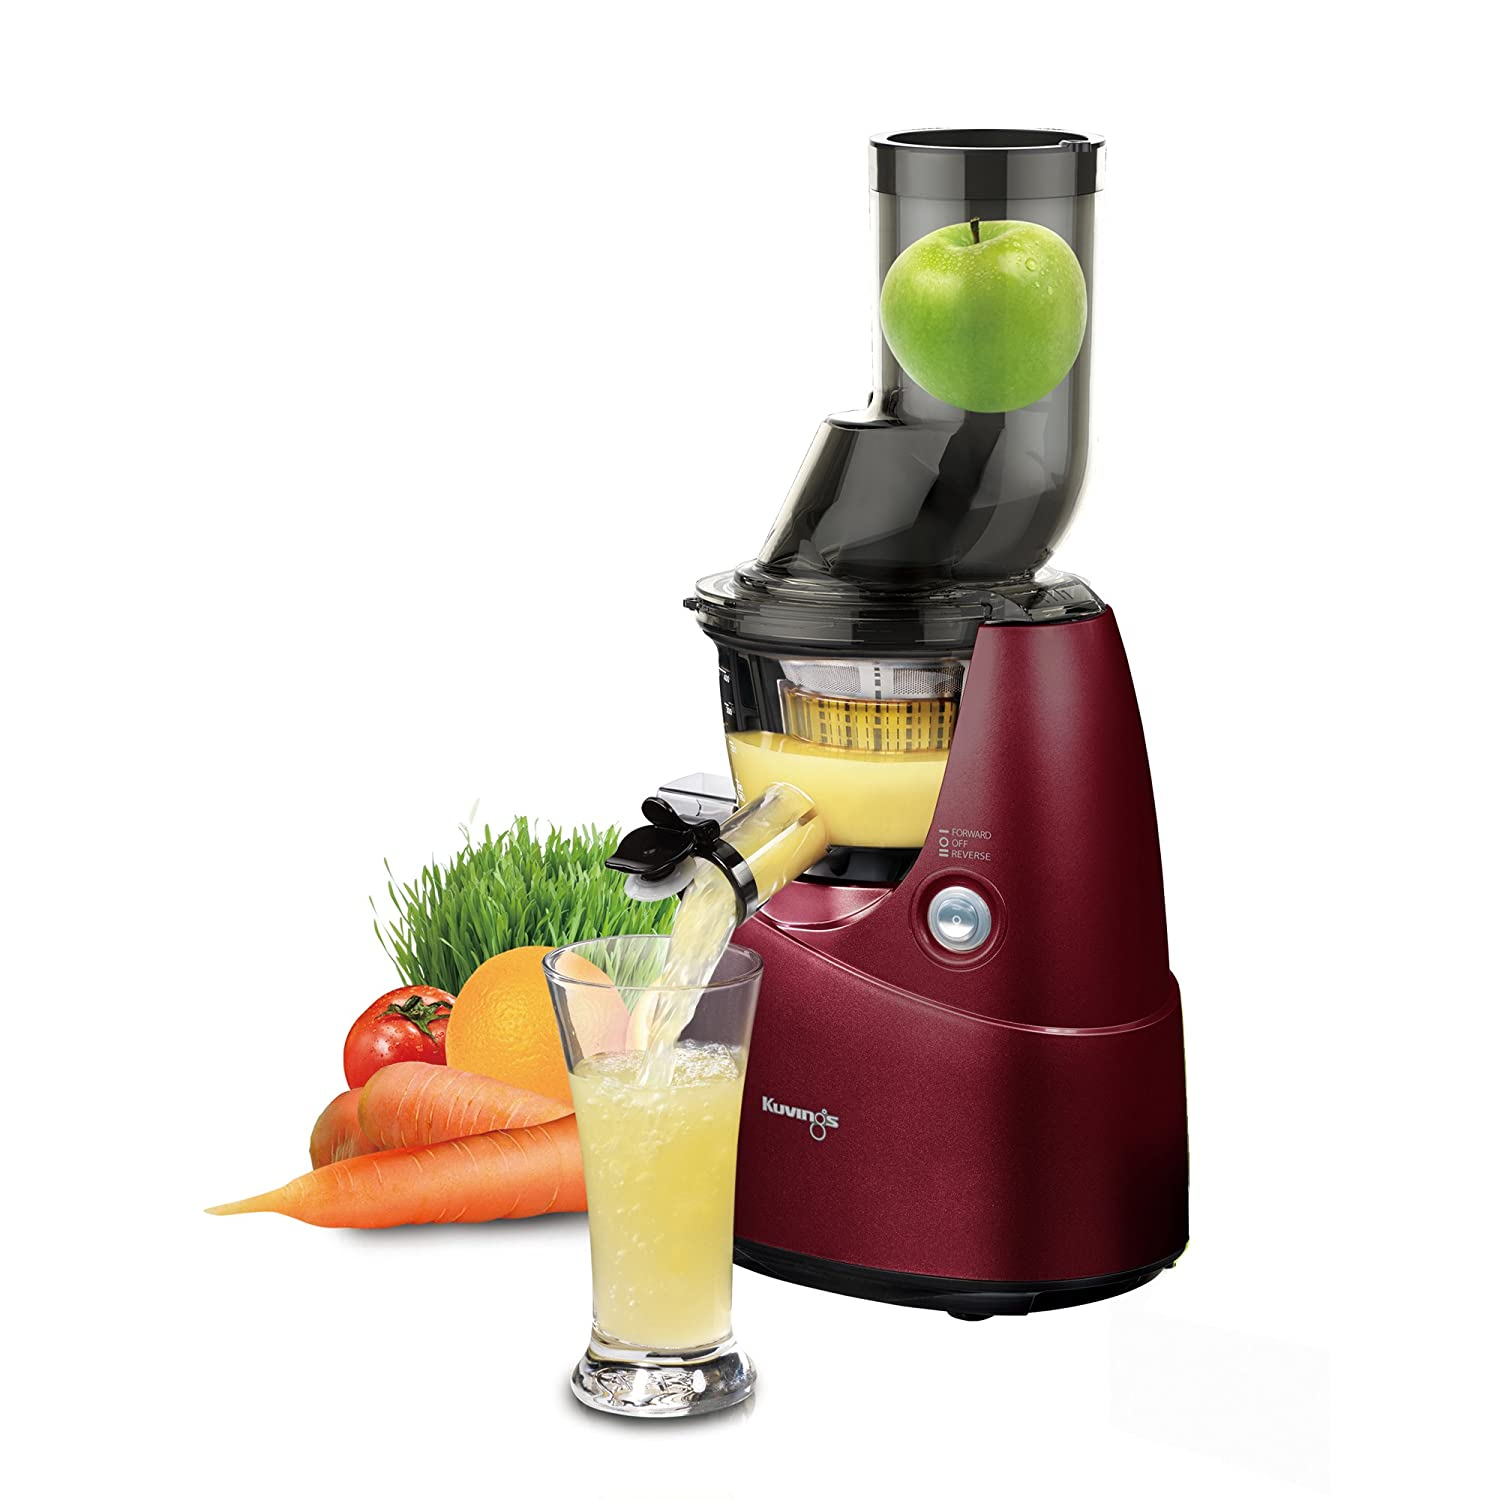 Kuvings BPA-Free Slow Juicer Black Friday Deals 2021